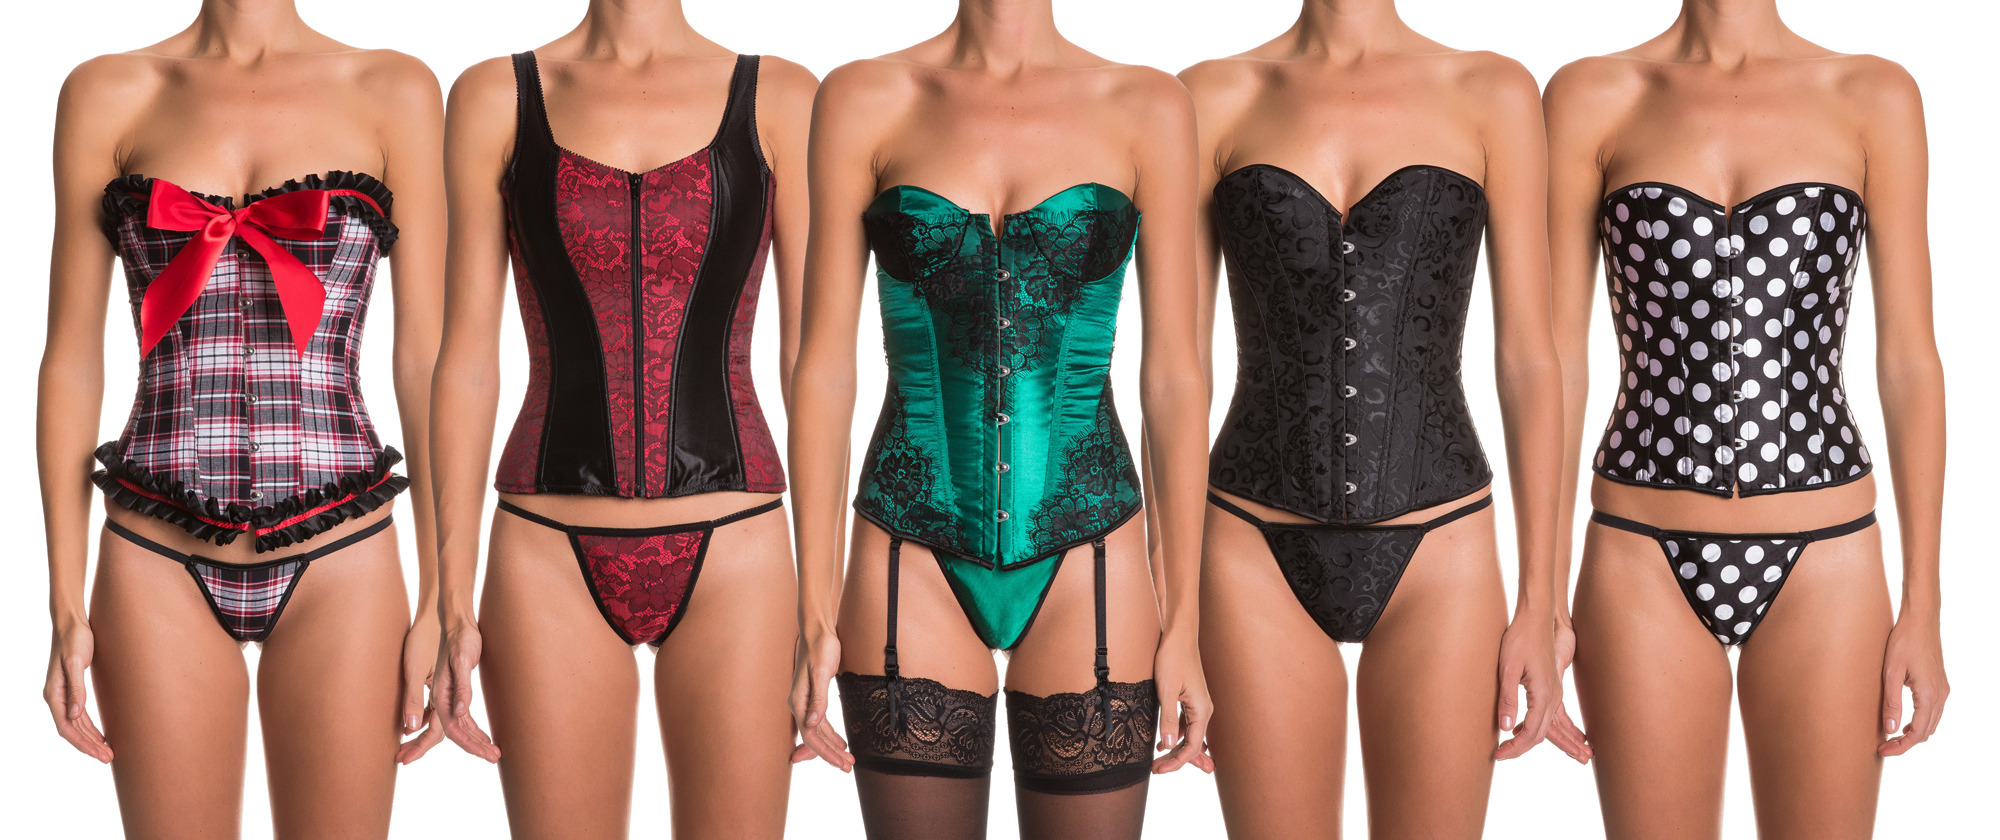 b1bb260c9d4 Intimax corsets are gorgeous for christmas